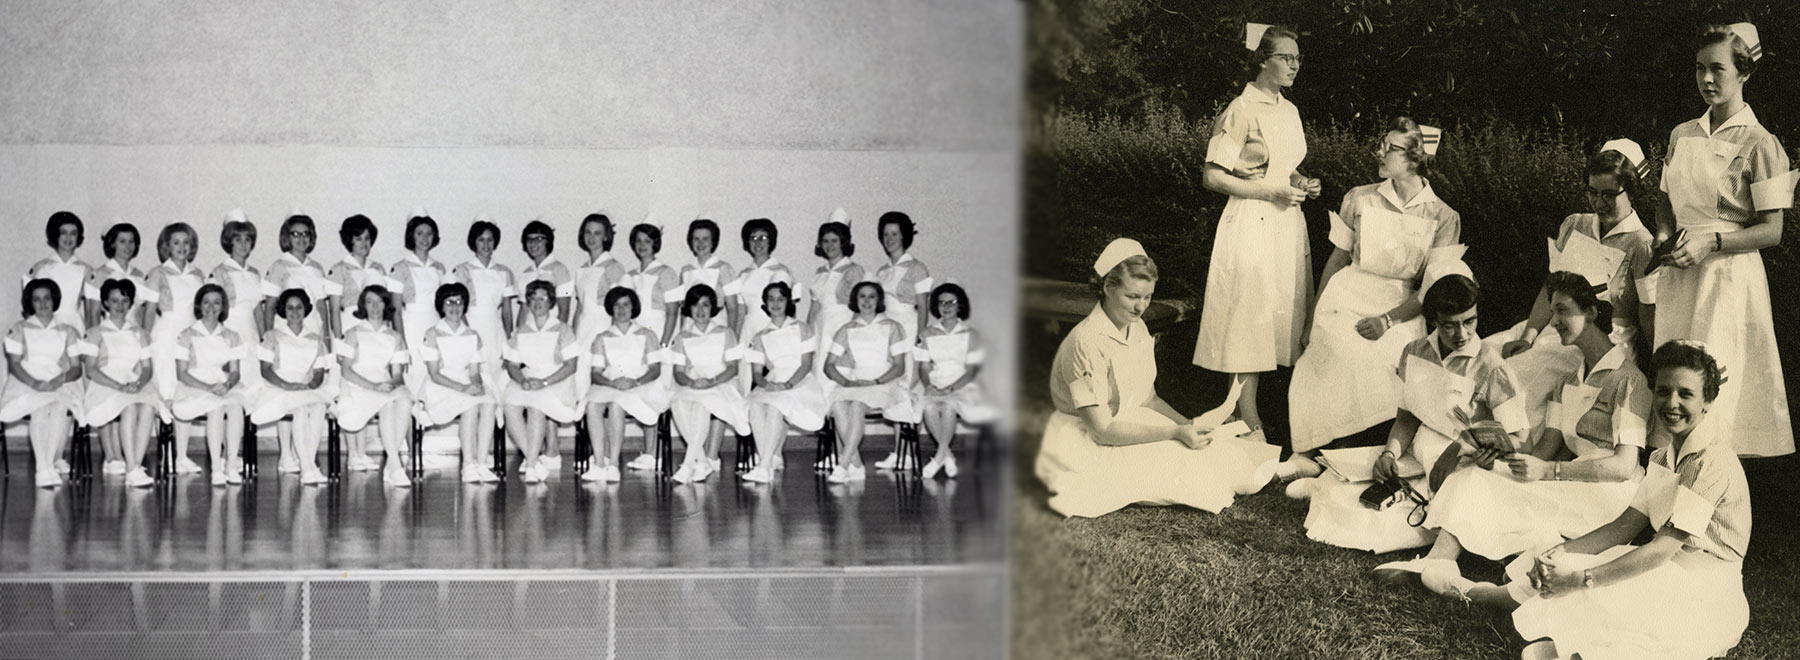 'The shoulders of those who came before us:' School of Nursing turns 70